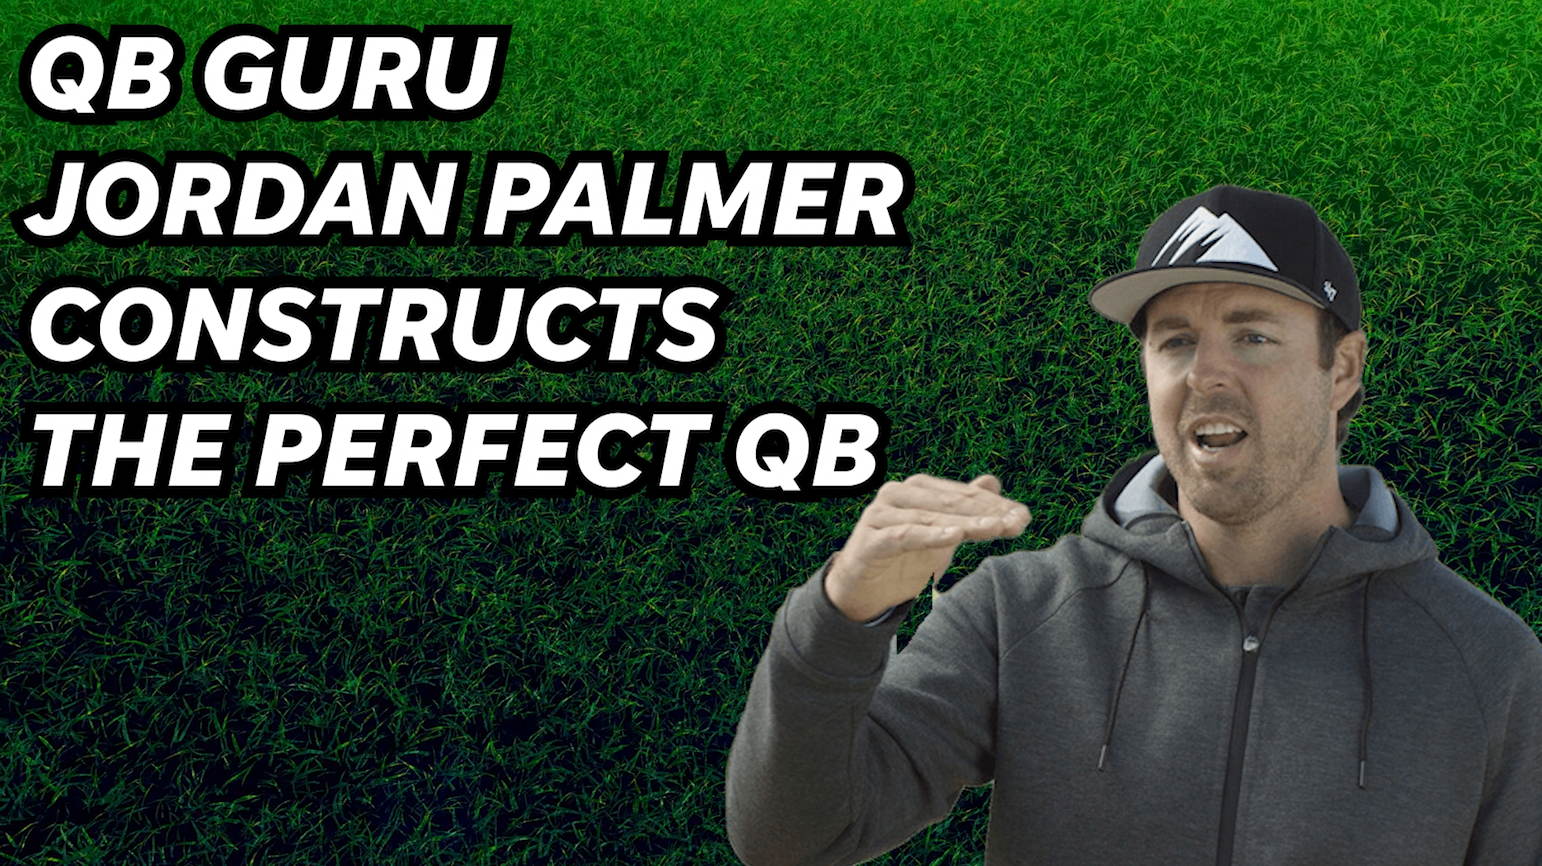 QB guru Jordan Palmer constructs the perfect 'Frankenstein' quarterback